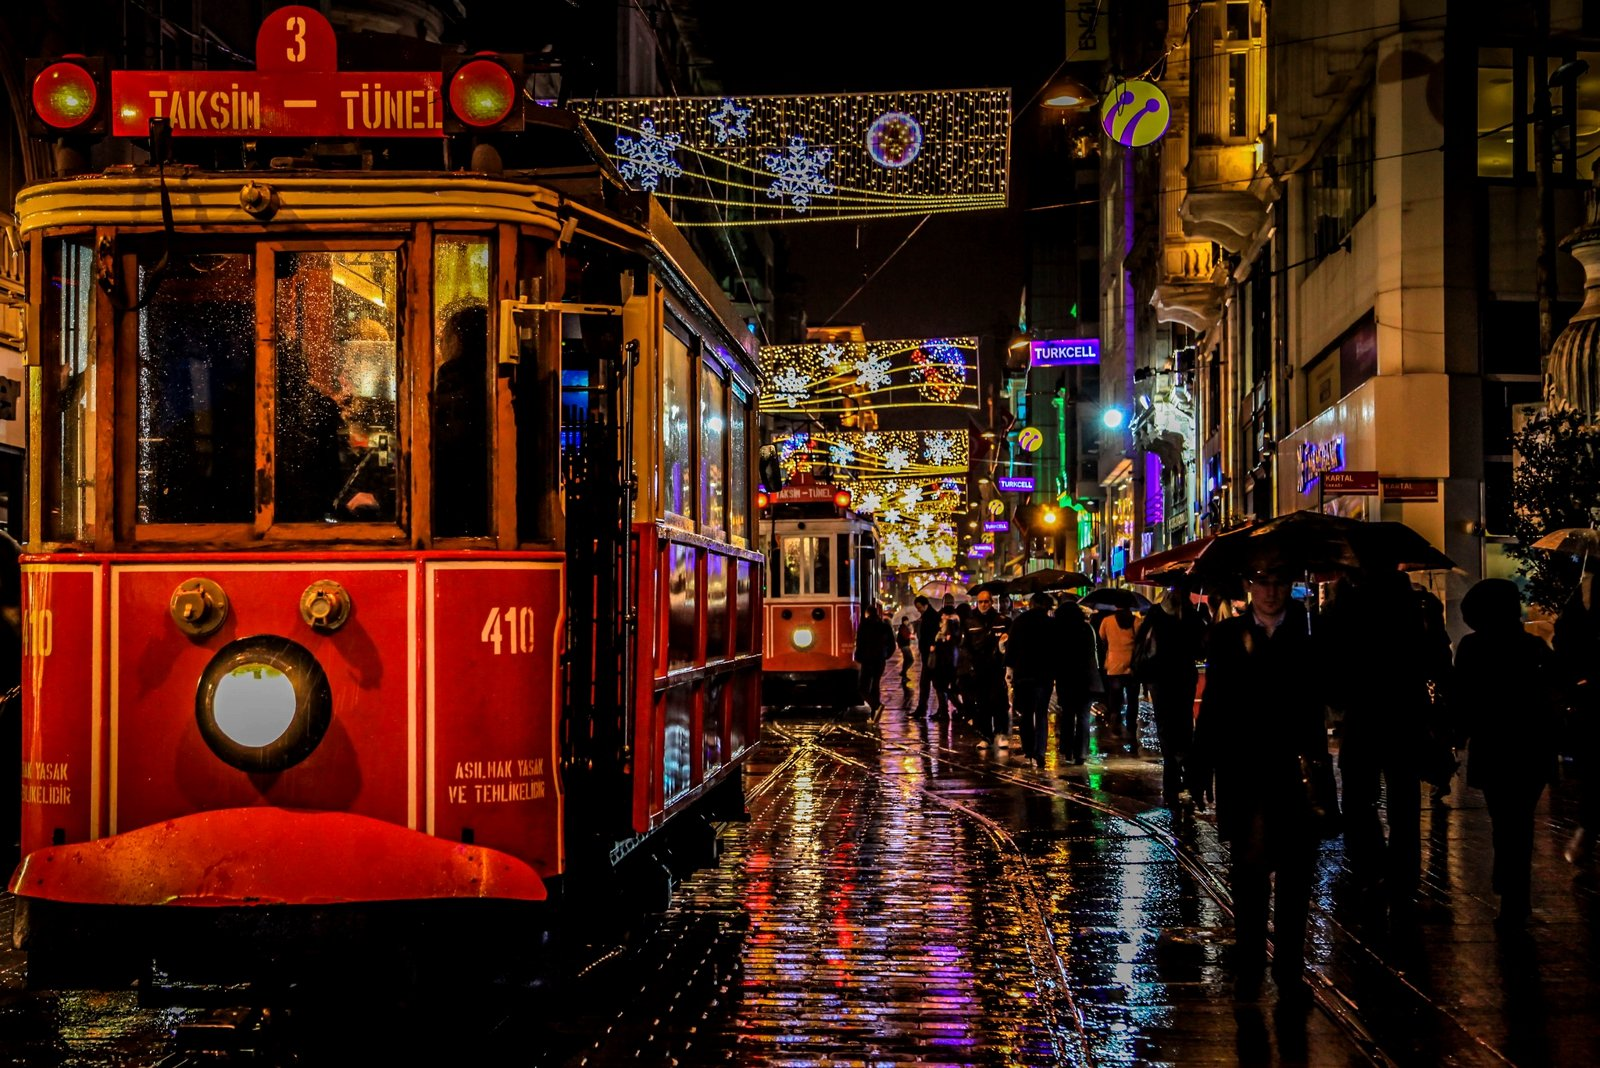 How To Ride On The Old Tram In Beyoglu District In Istanbul